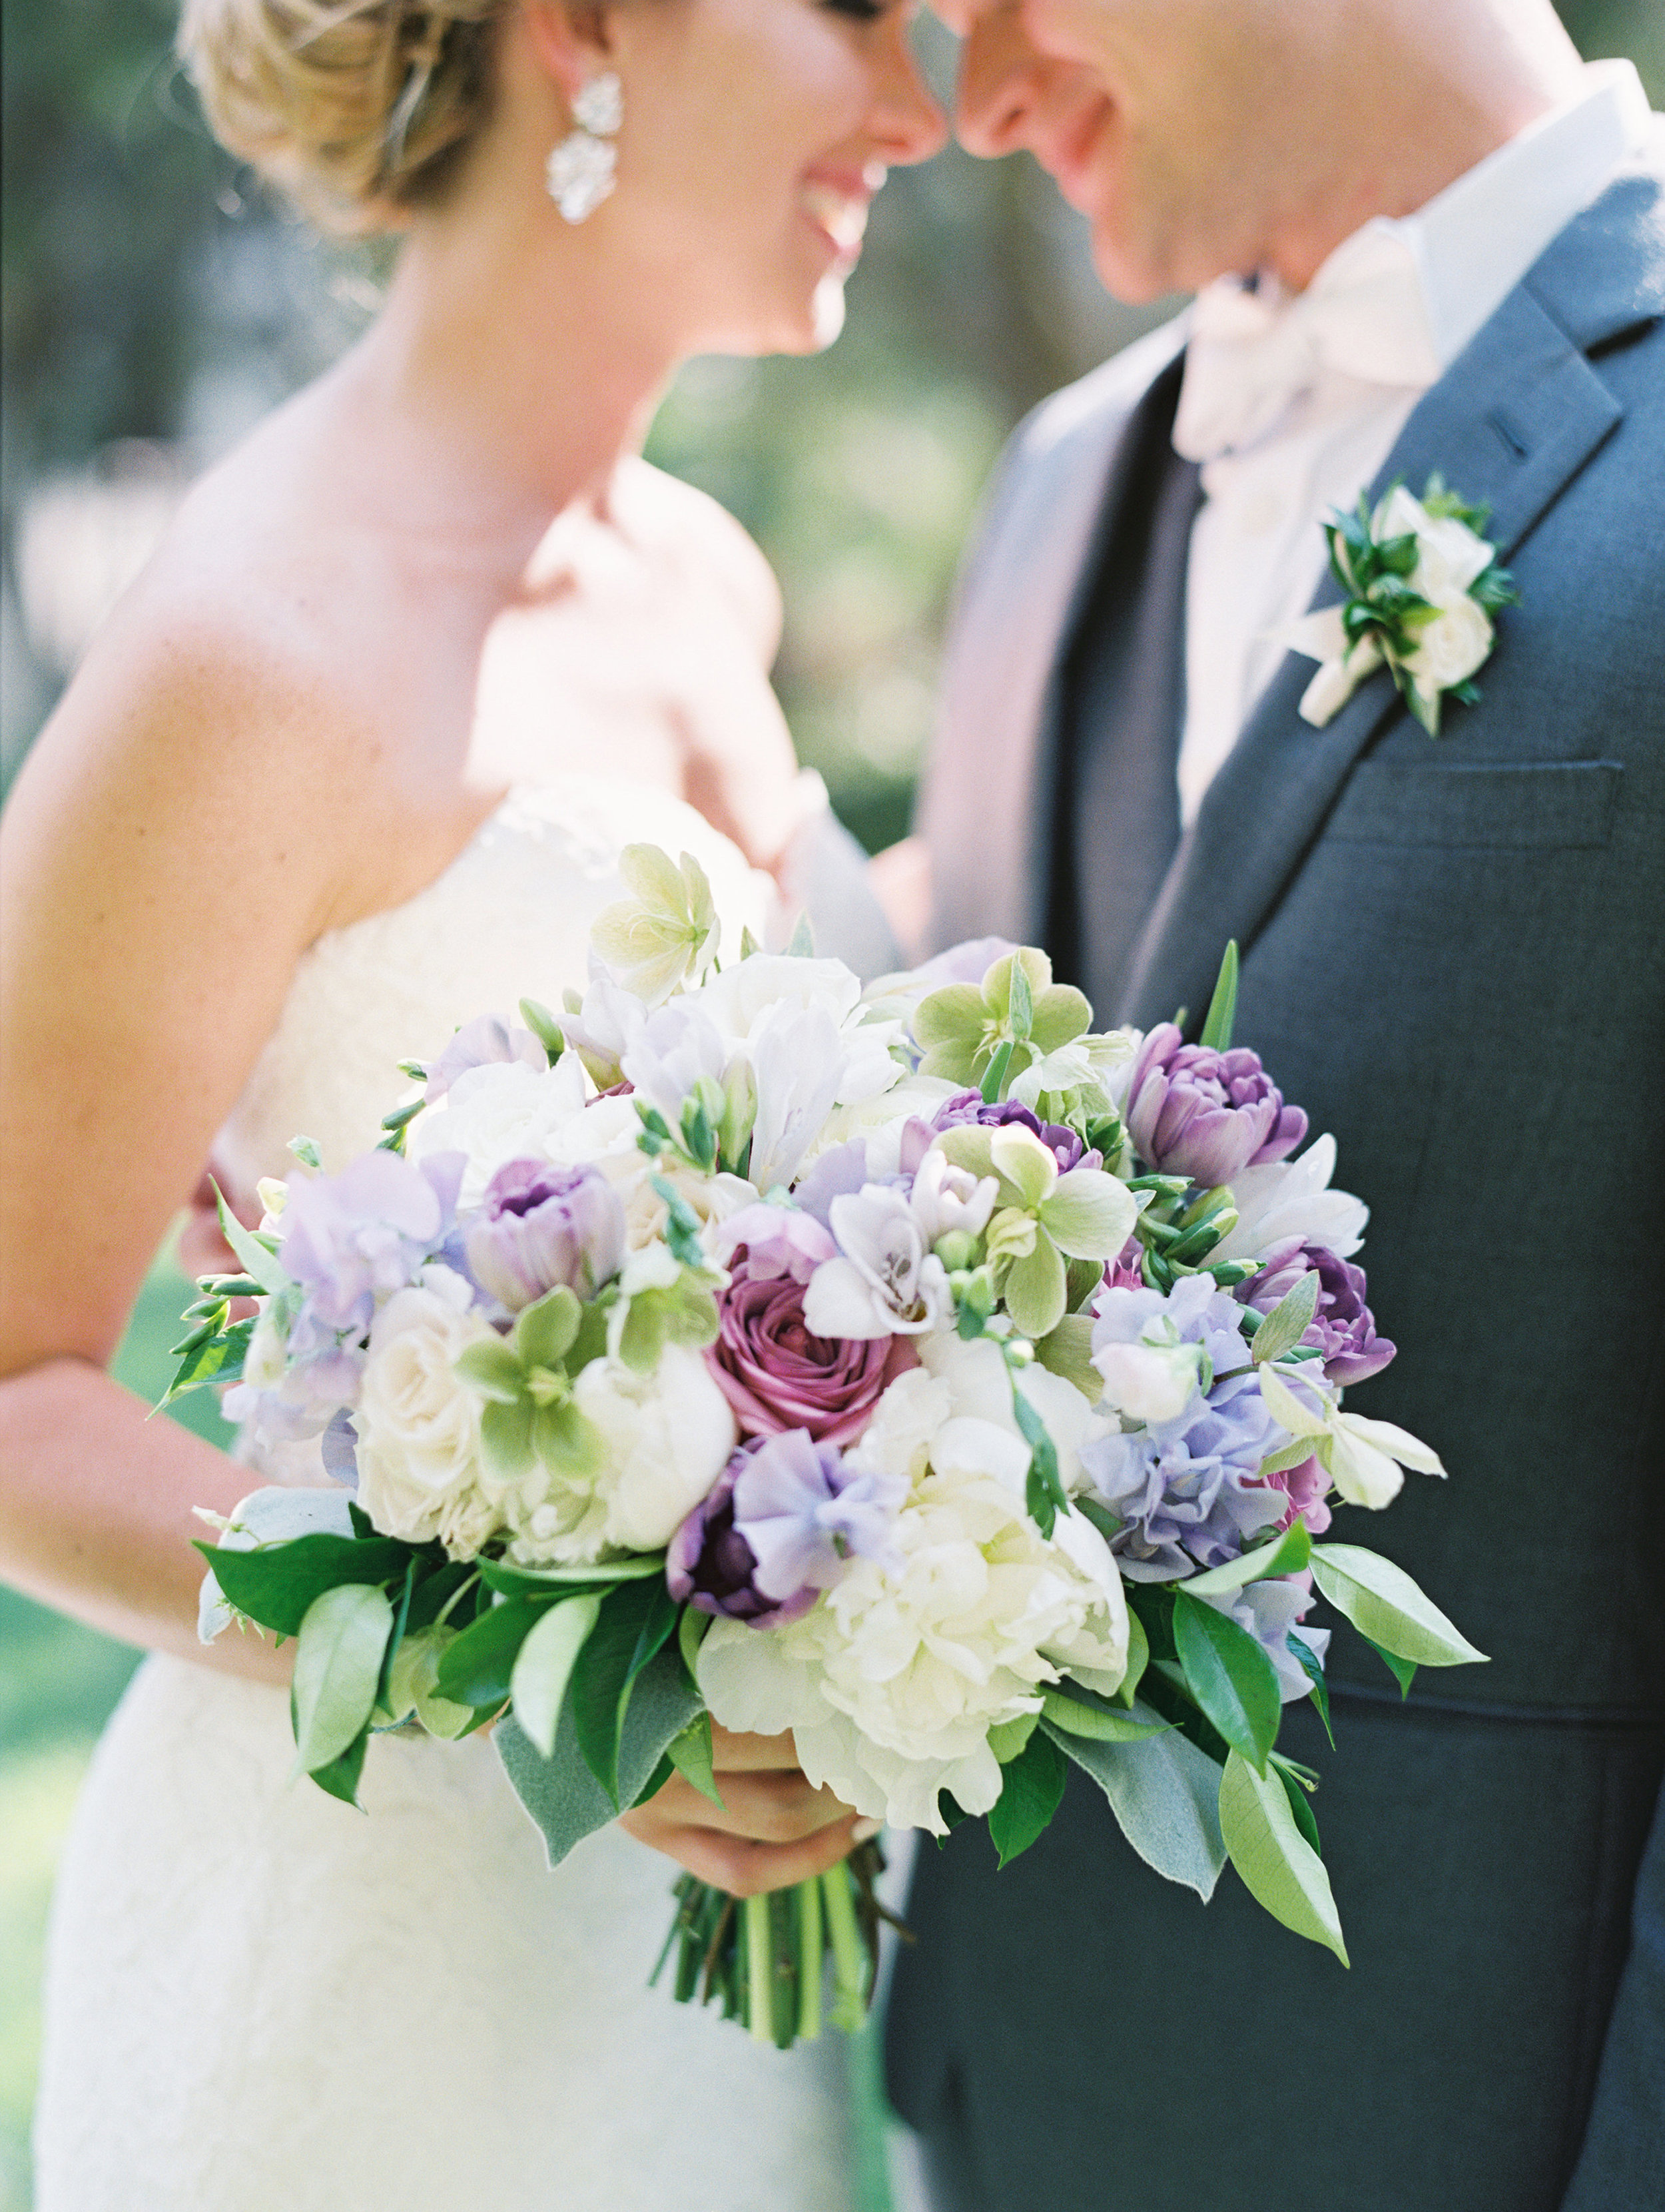 Photography -  Lavender and Twine Photography   White Peony - Spring/Winter  Lavender Sweet Peas - Spring/Early Summer  Lavender Double Tulip - Spring/Summer/Winter  Lavender Rose - Year Round  Lavender Freesia - Year Round  Green Hellebores - Spring/Winter  Lambs Ear - Year Round